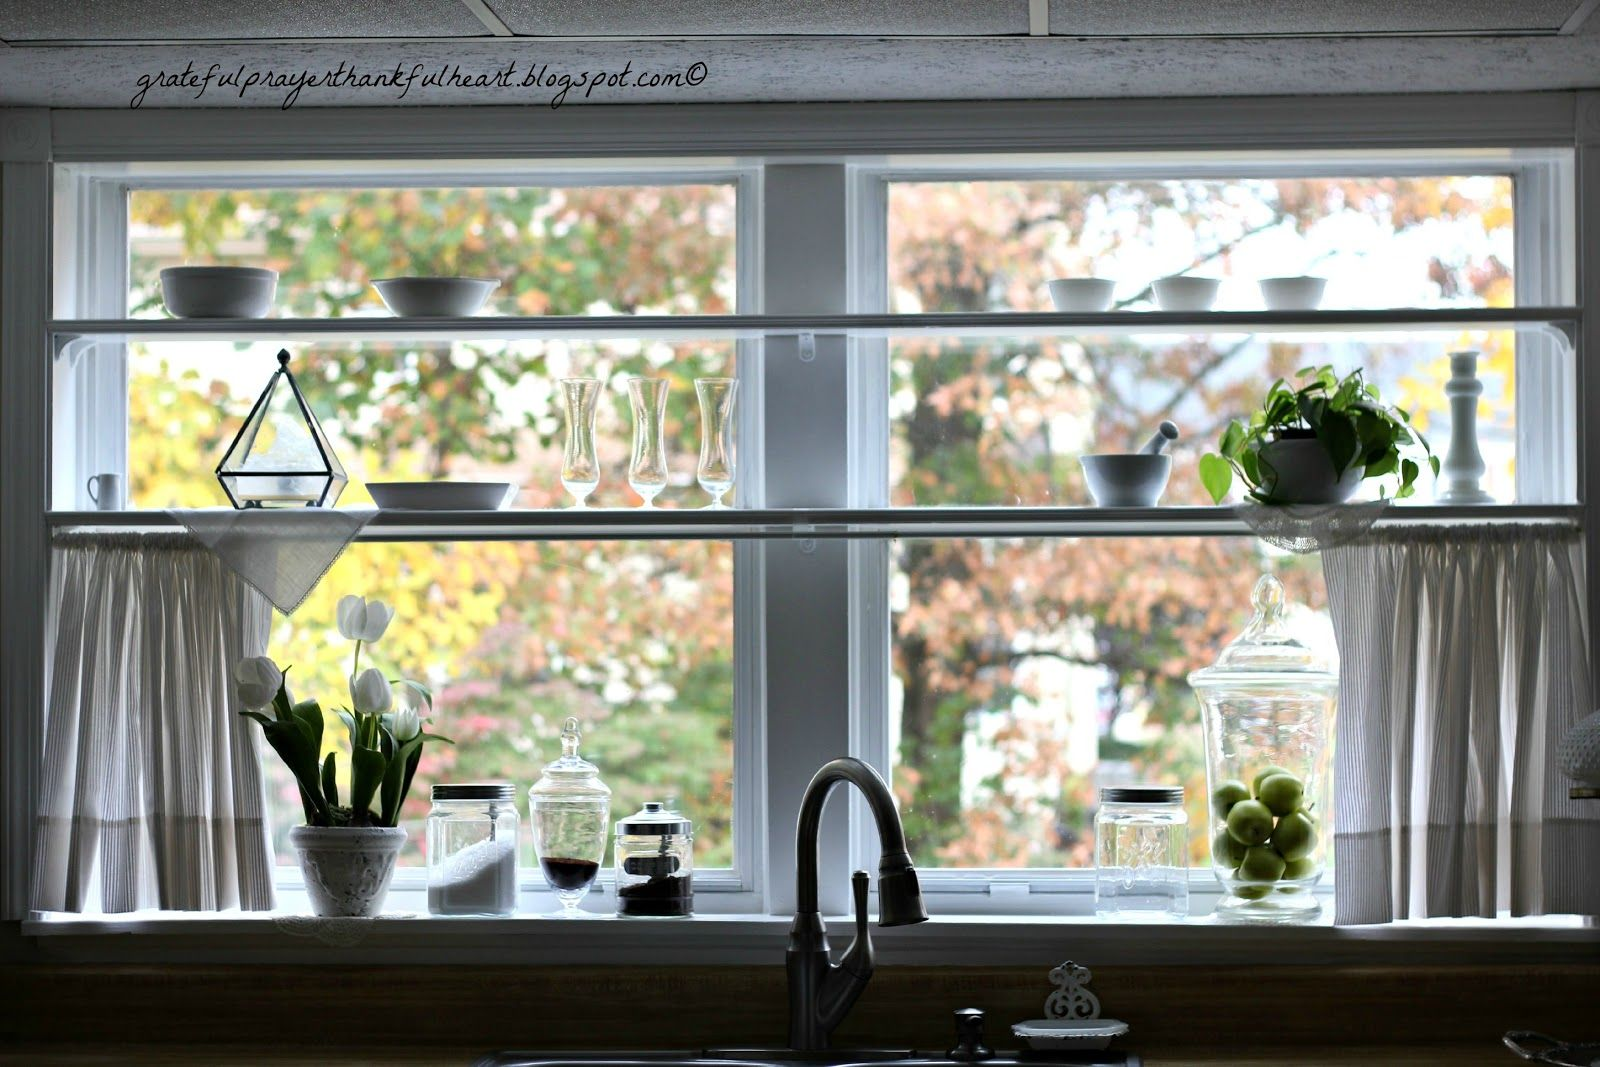 Window for kitchen  with a grateful prayer and a thankful heart  adding shelves to